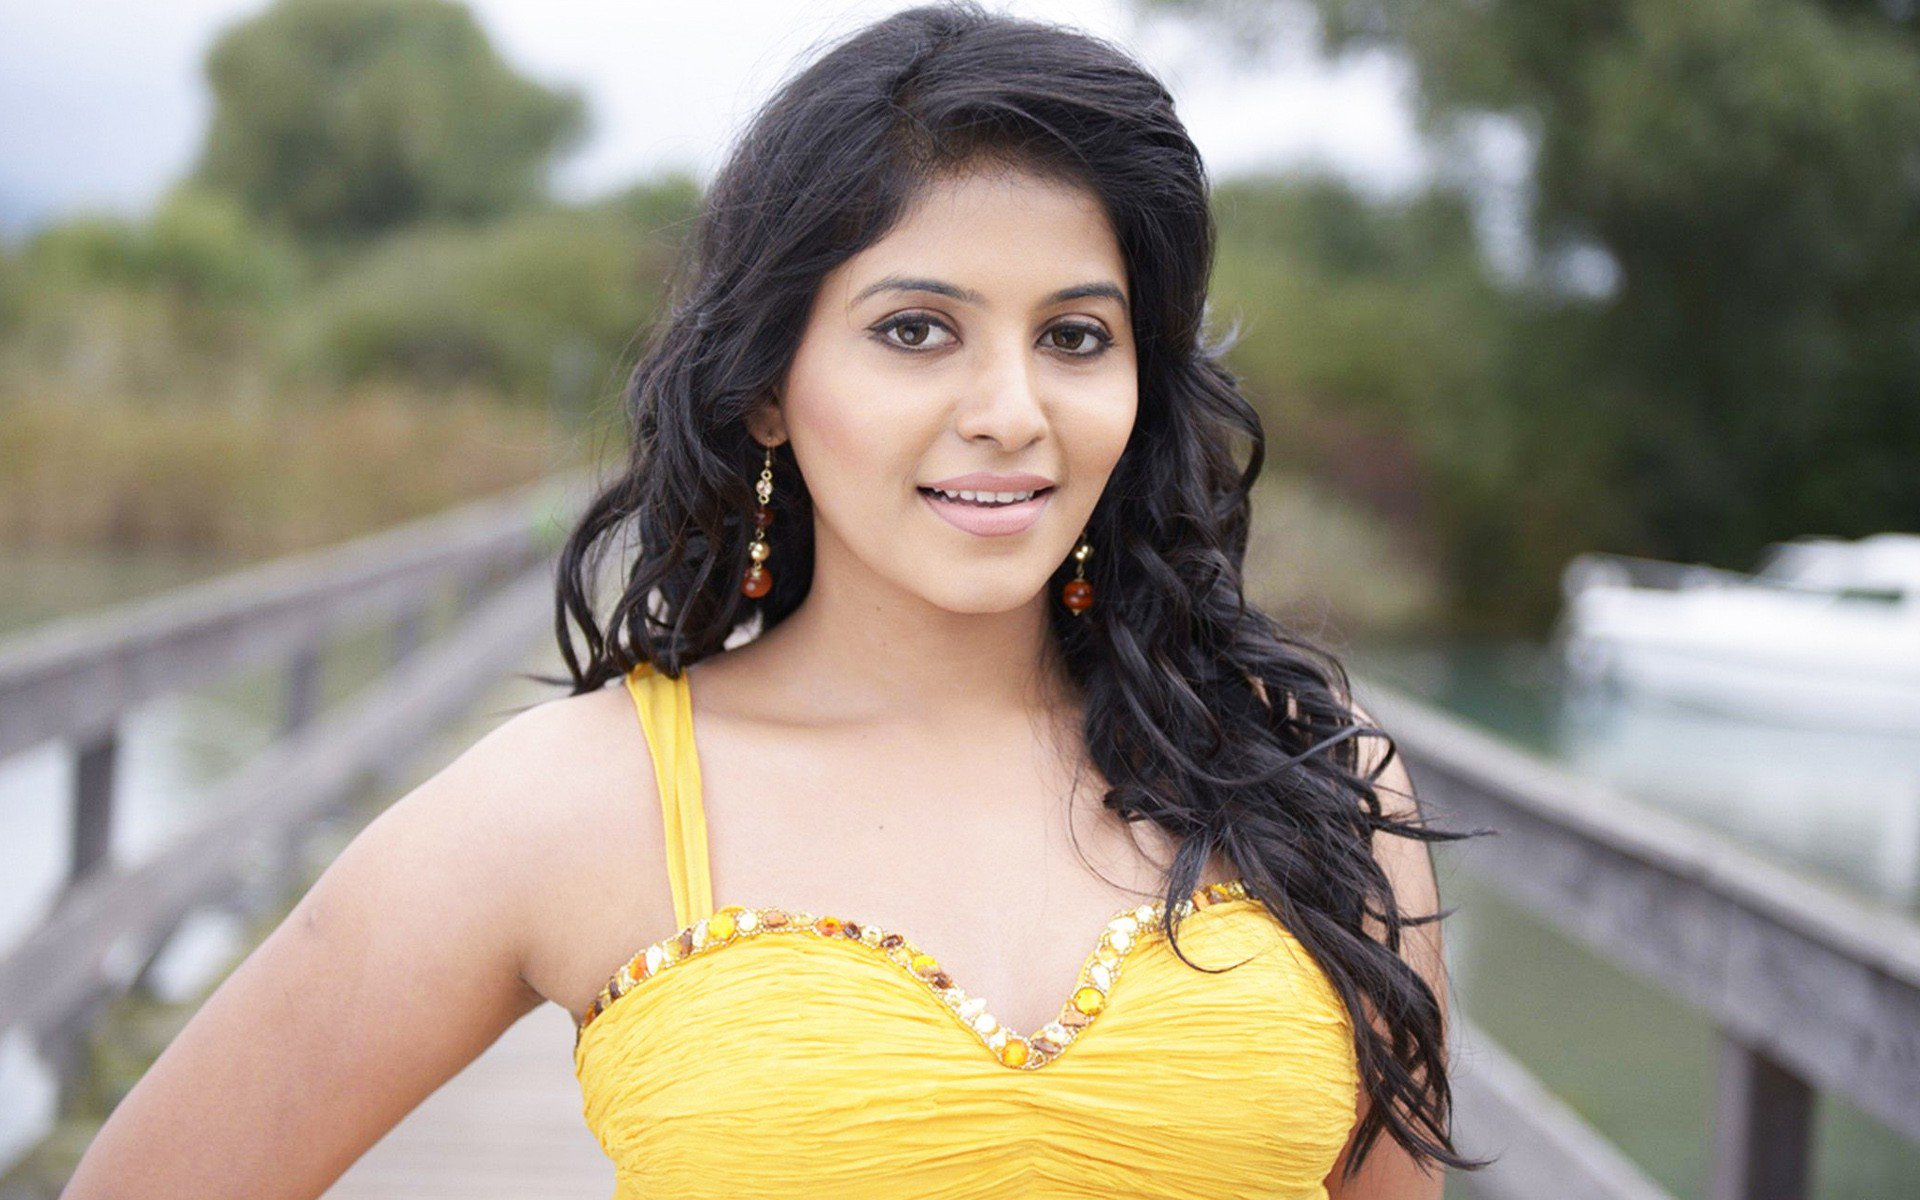 Discussion on this topic: Kishwar Merchant 1997, anjali/